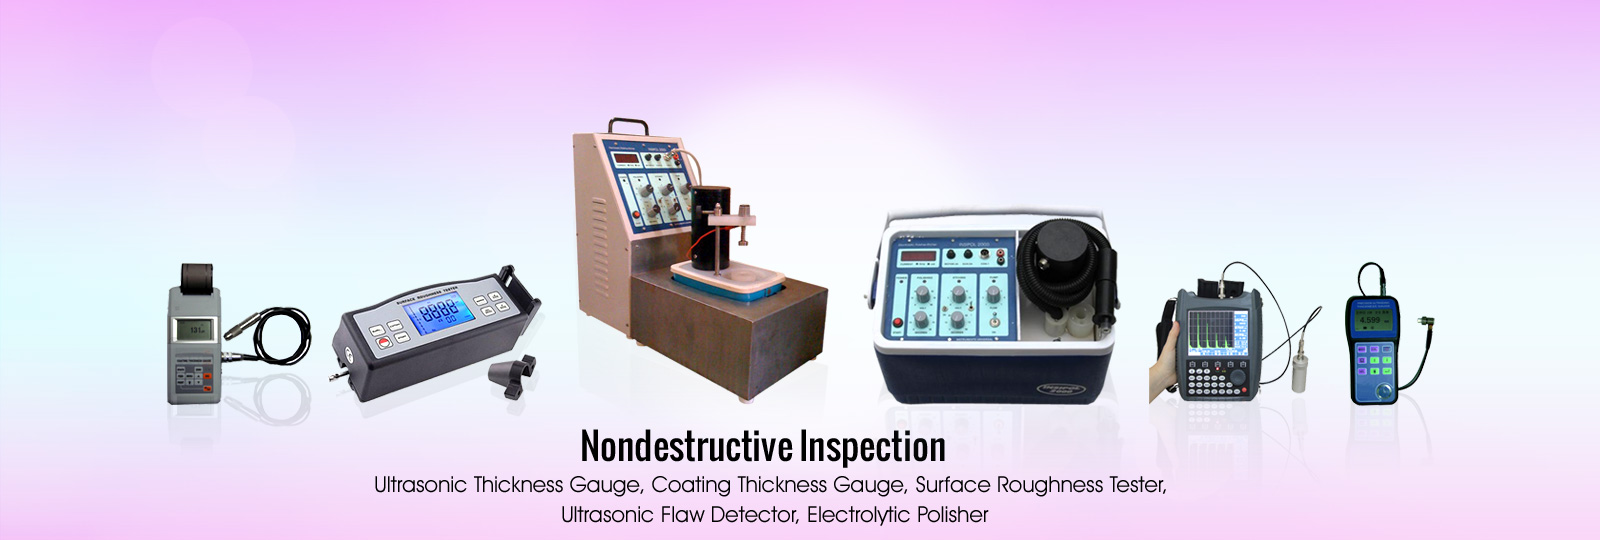 Nondestructive Inspection Instruments (NDT)